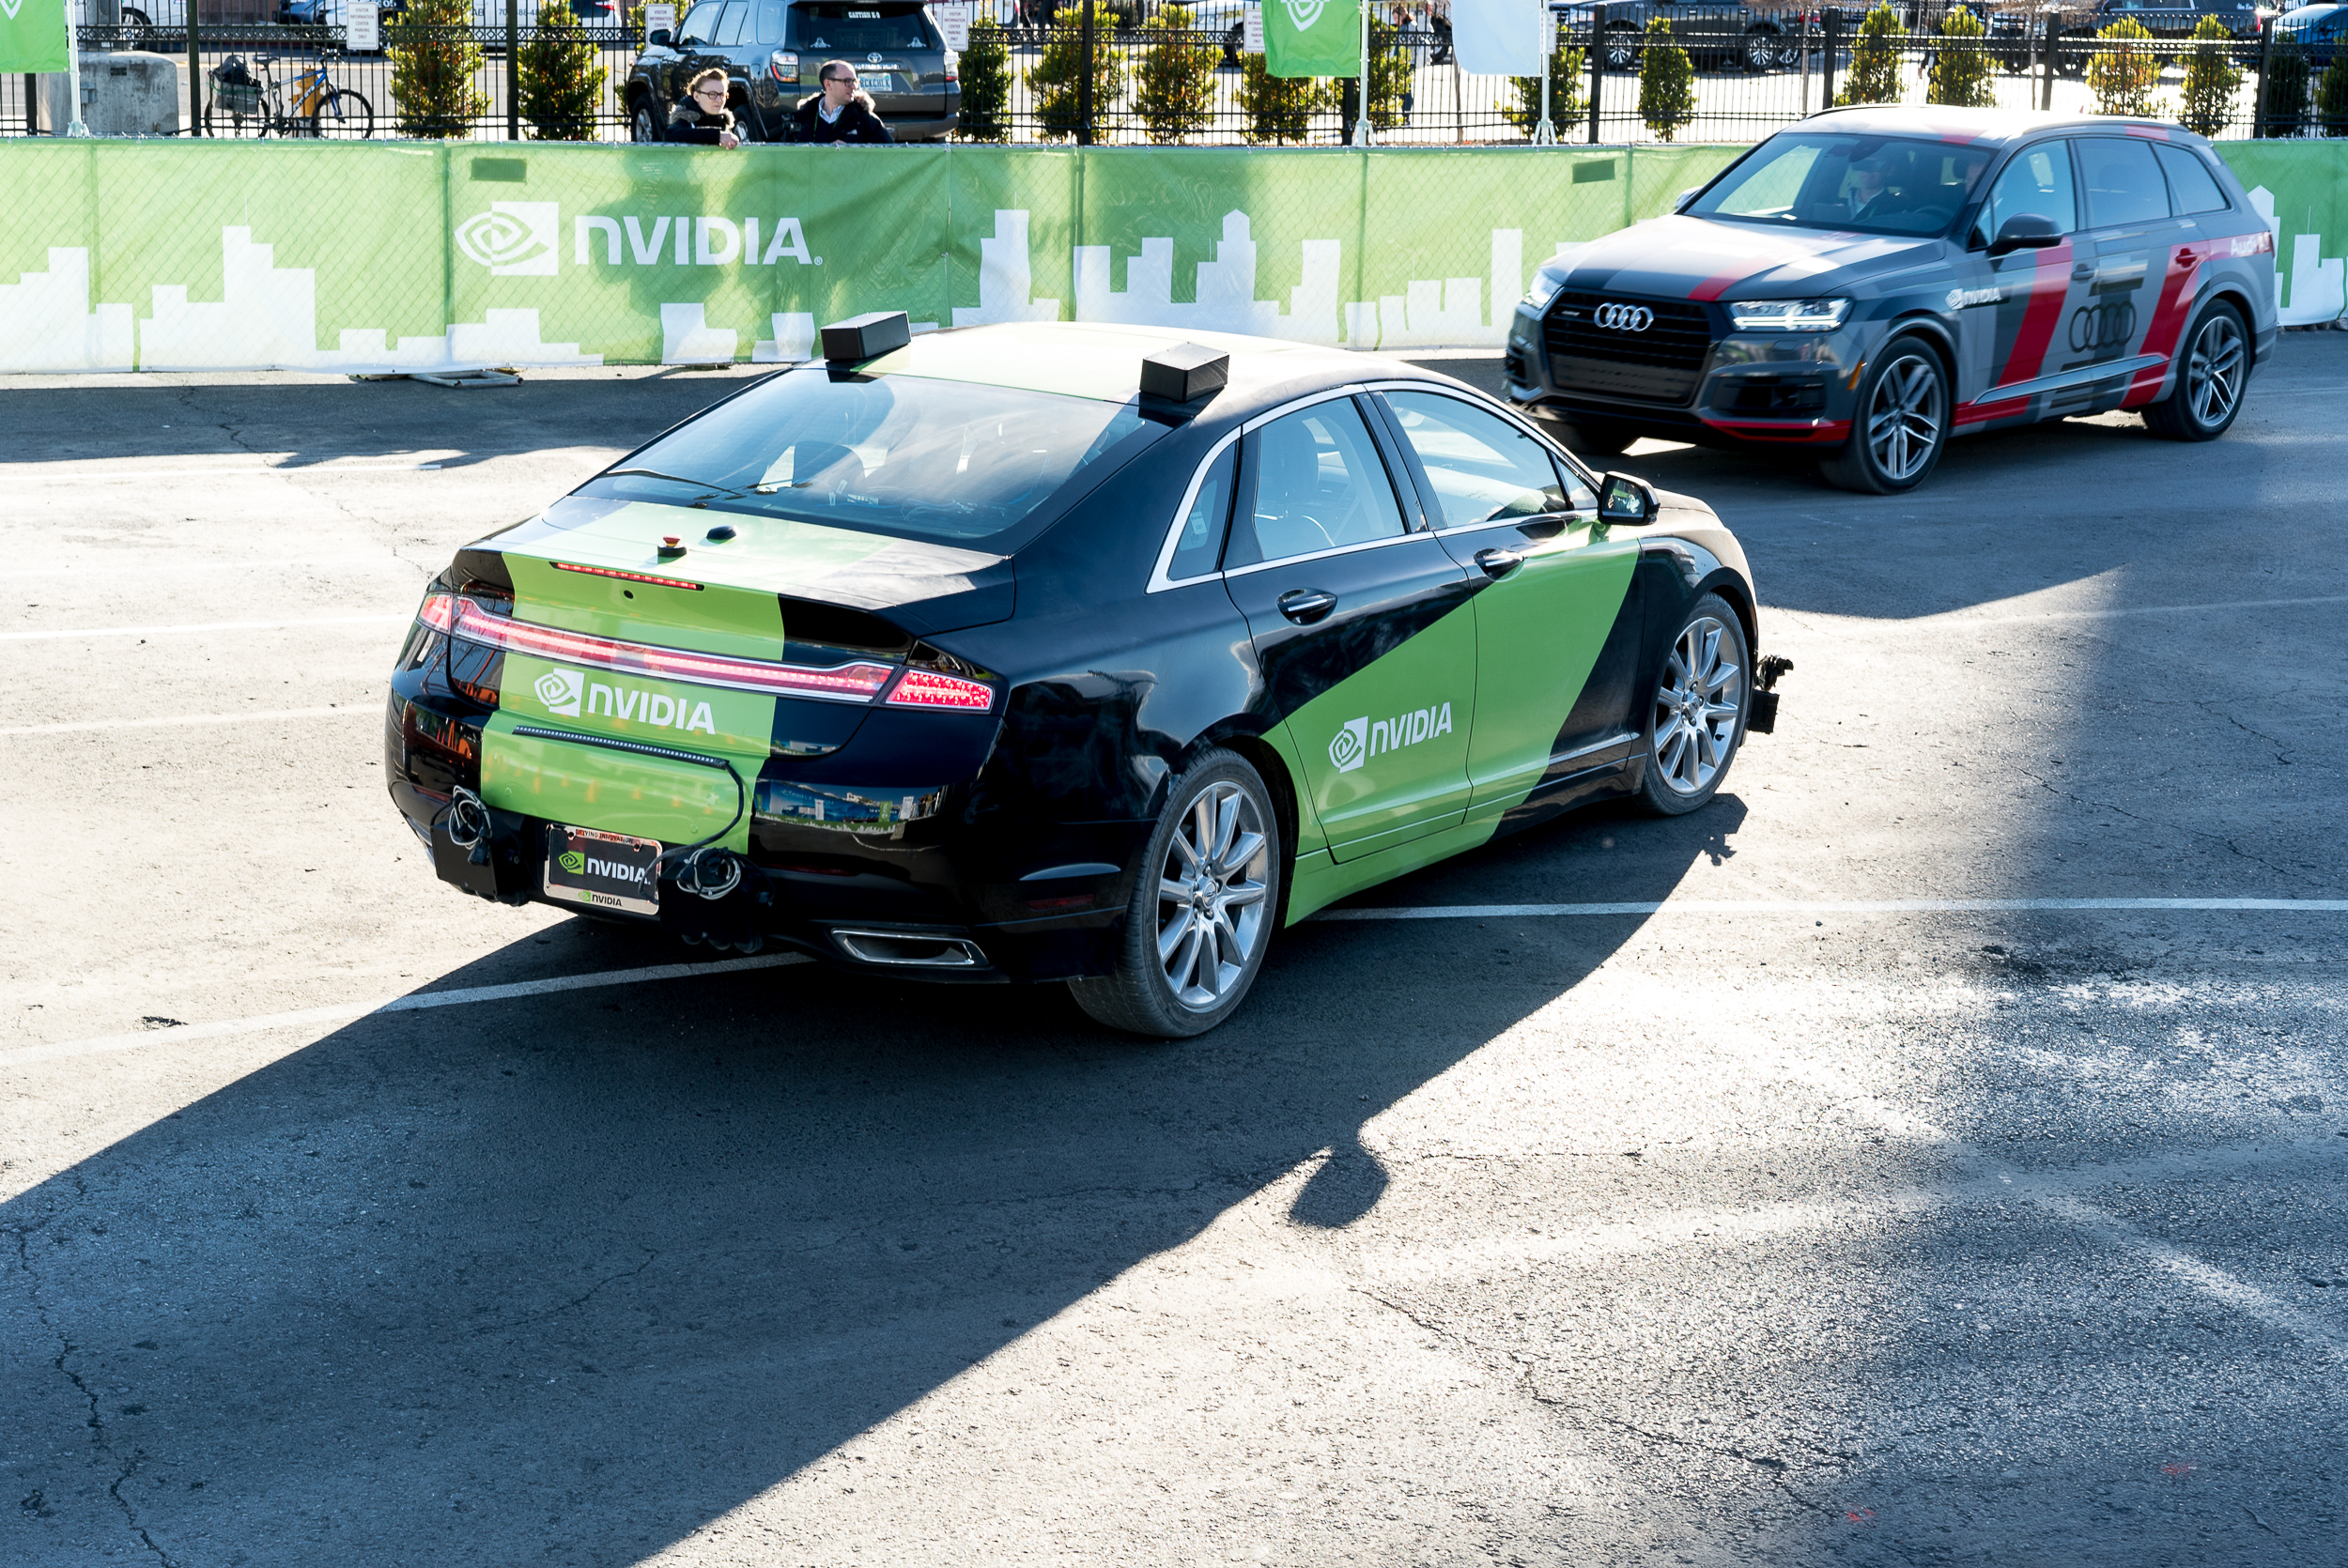 nvidia-forms-partnership-with-volvo-to-bring-autonomous-cars-by-2021